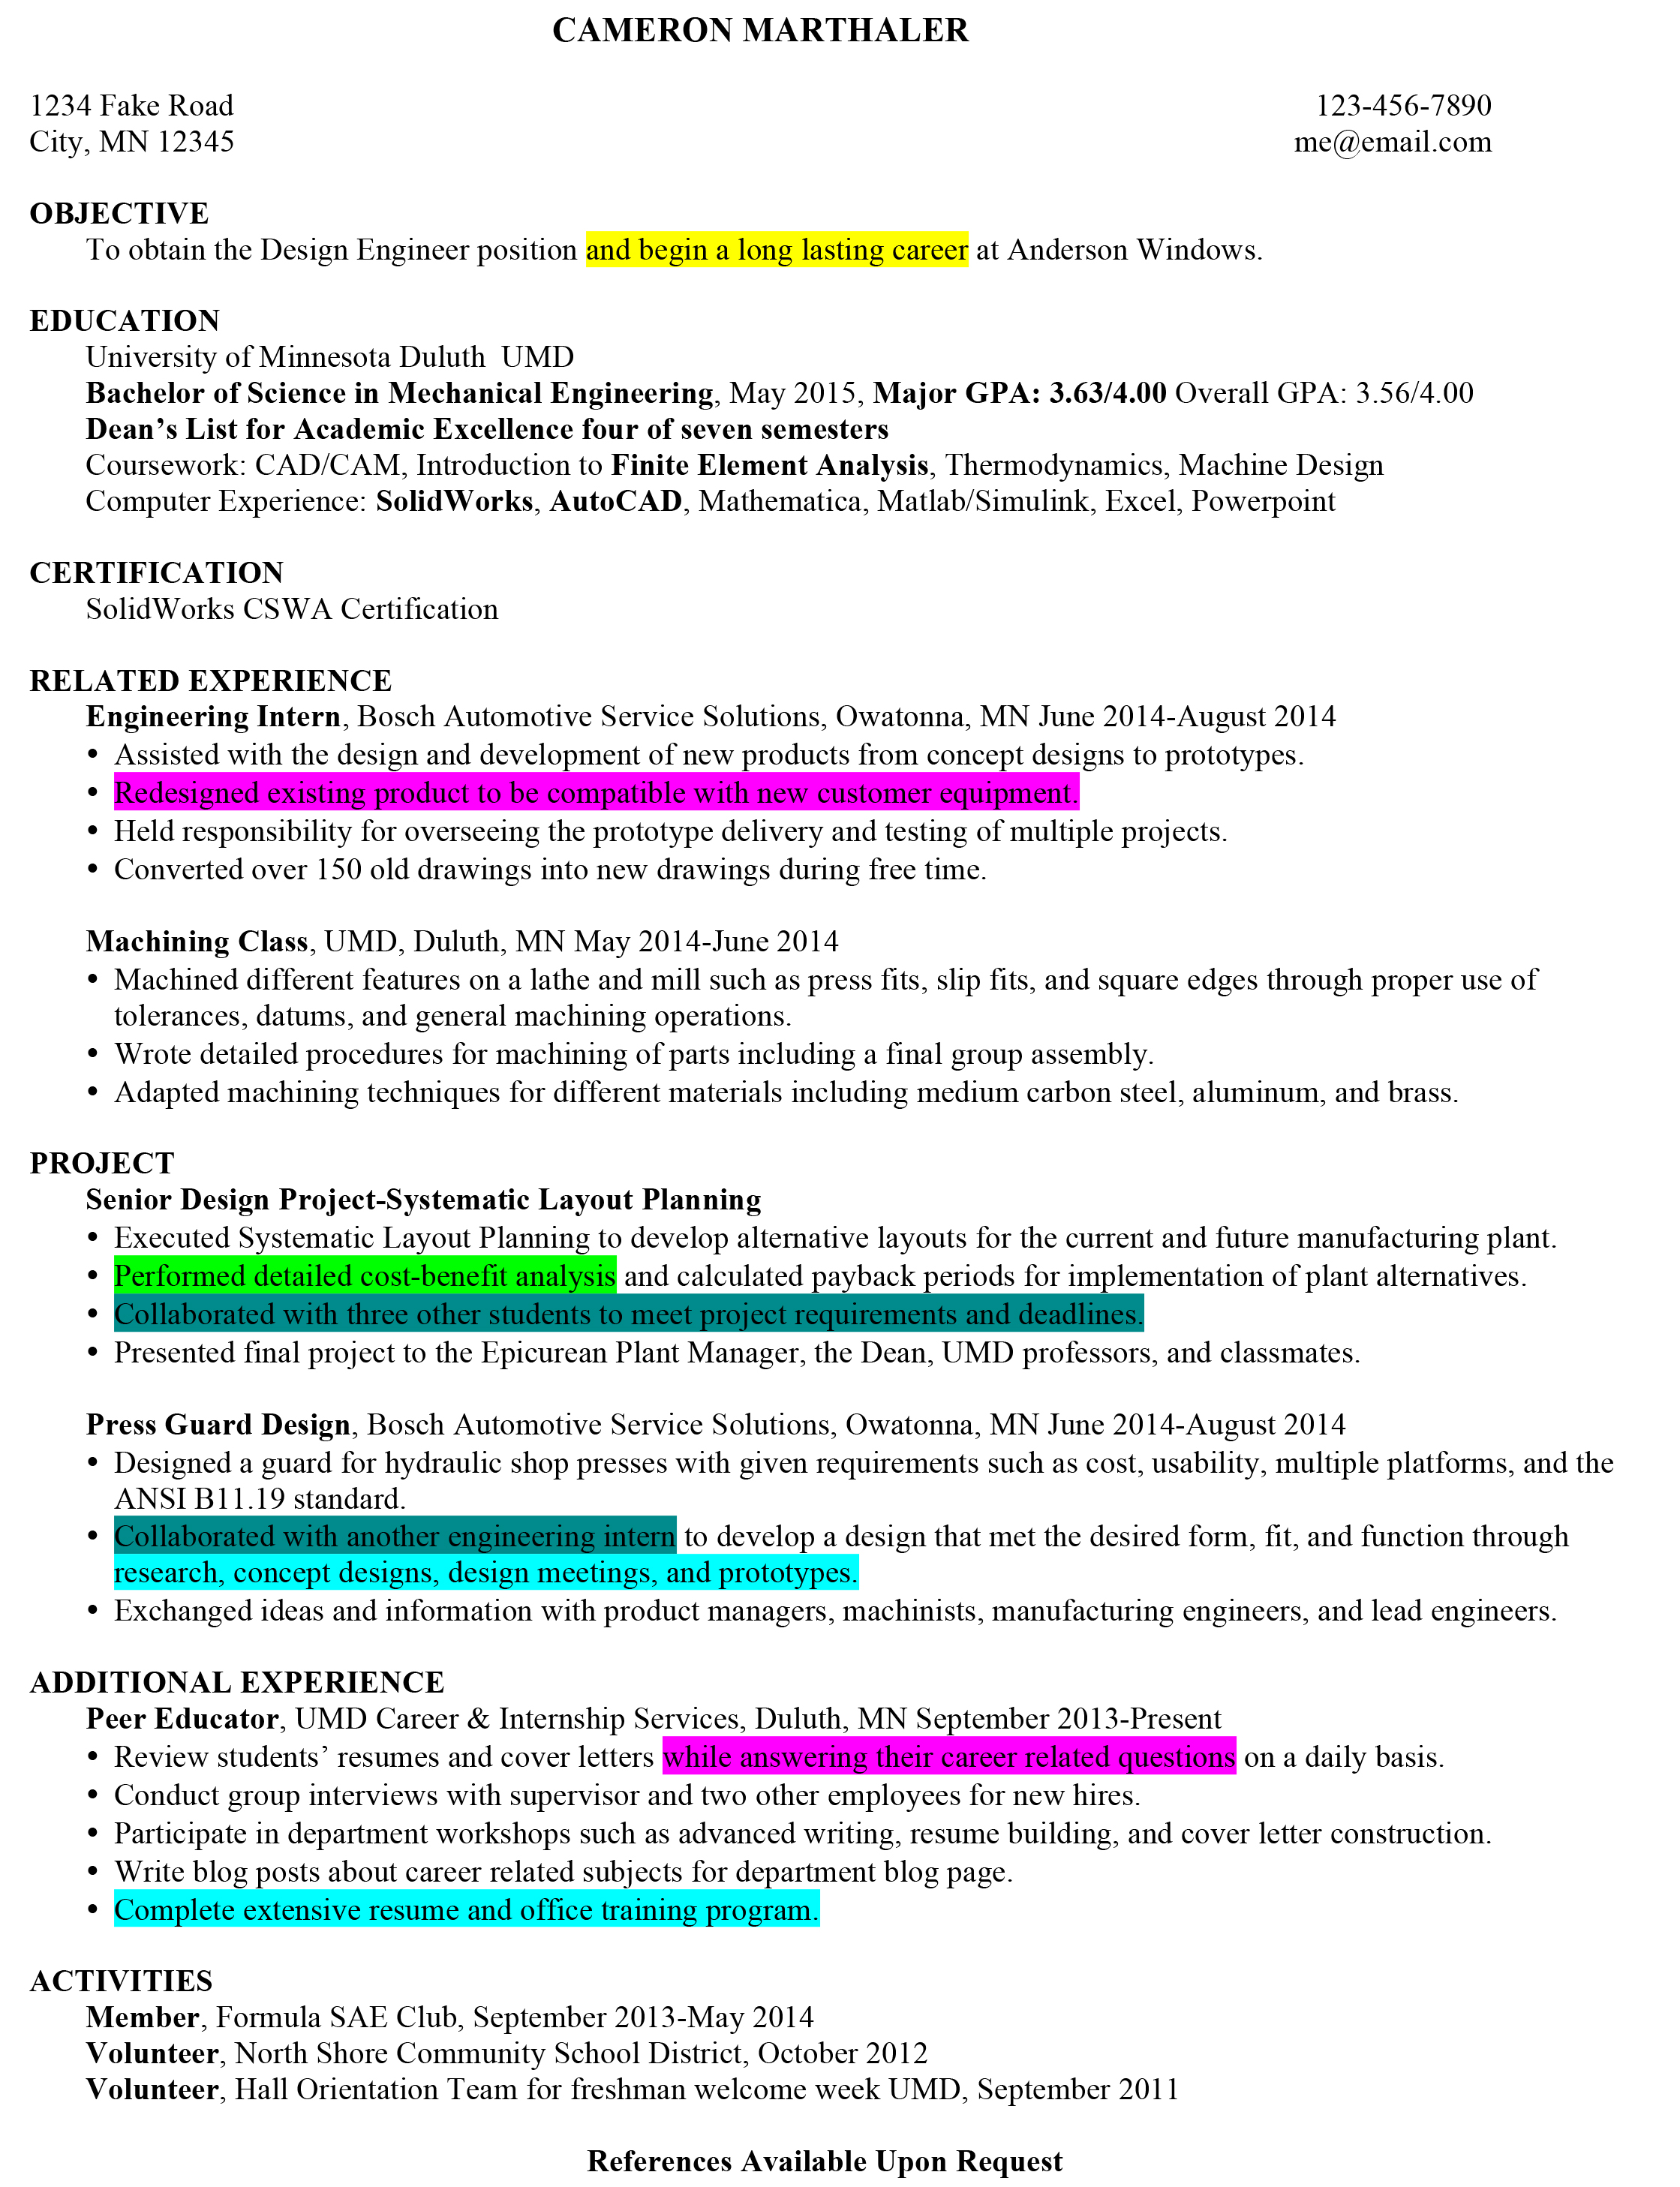 Doc Skills To Put On Professional Resume Professional  Words To Put On A Resume